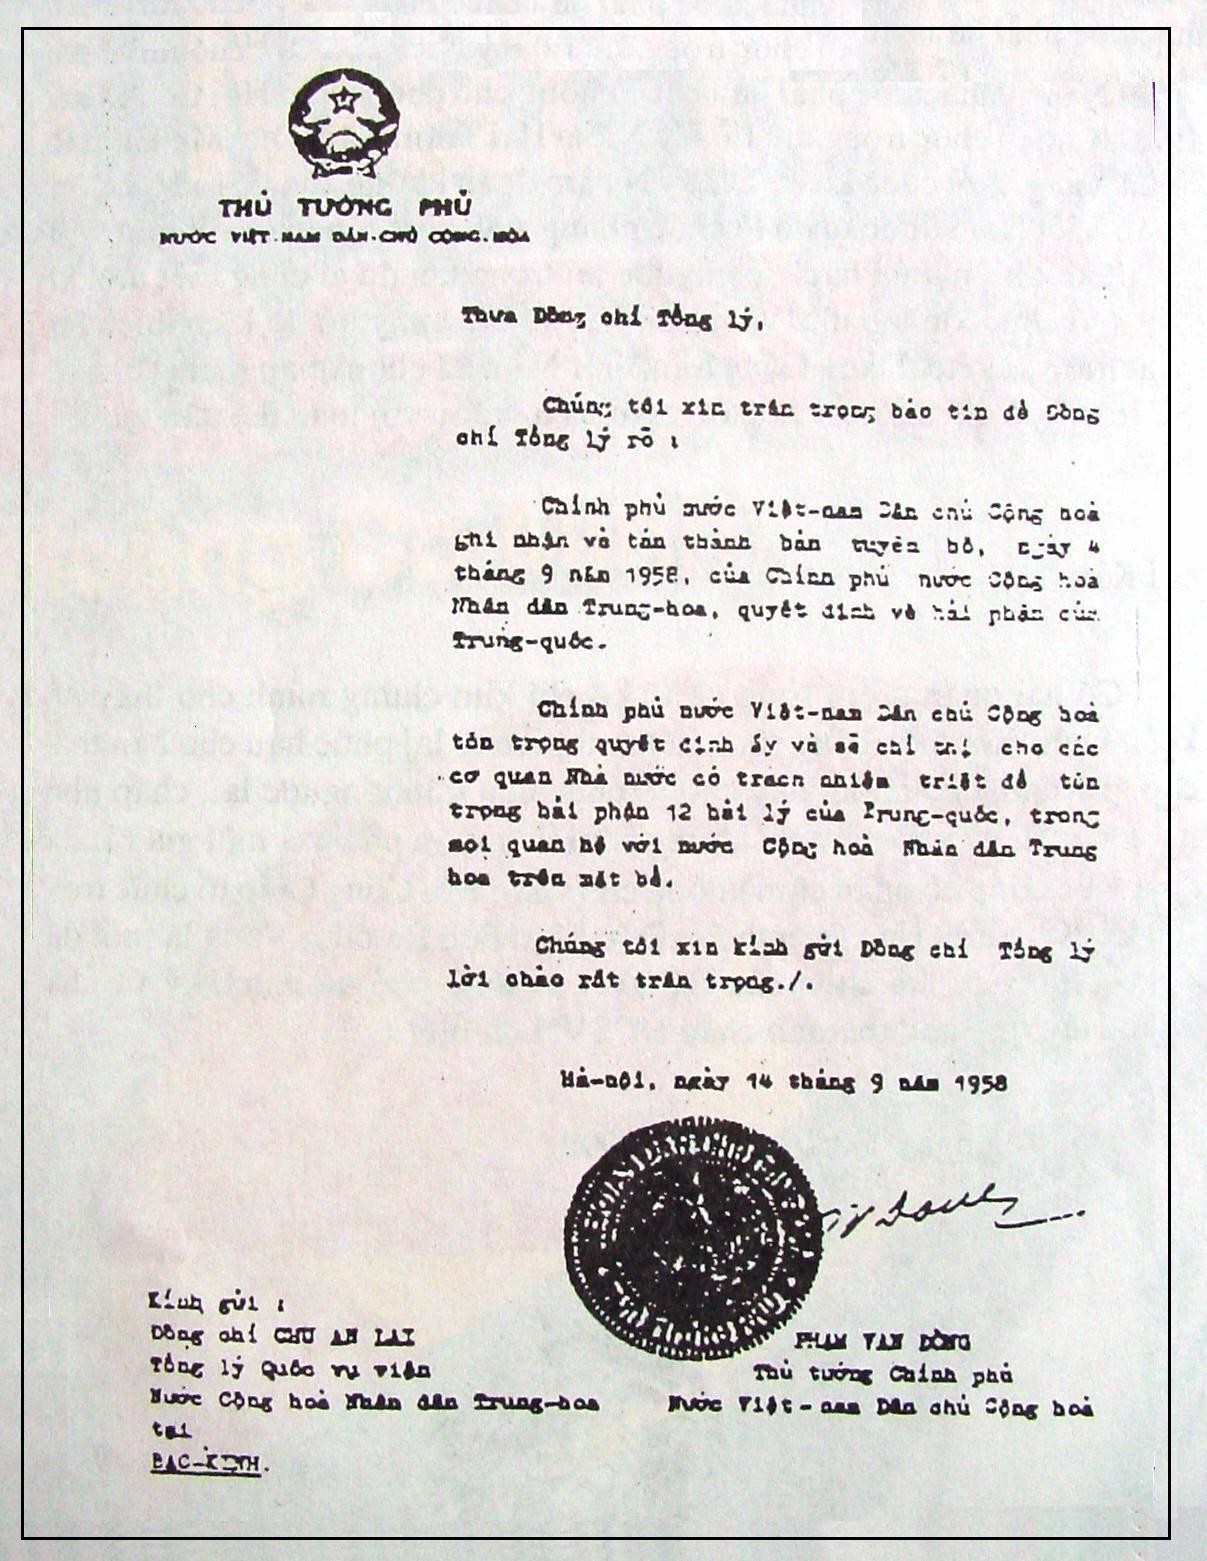 Pham Van Dong diplomatic note to Zhou Enlai 1958